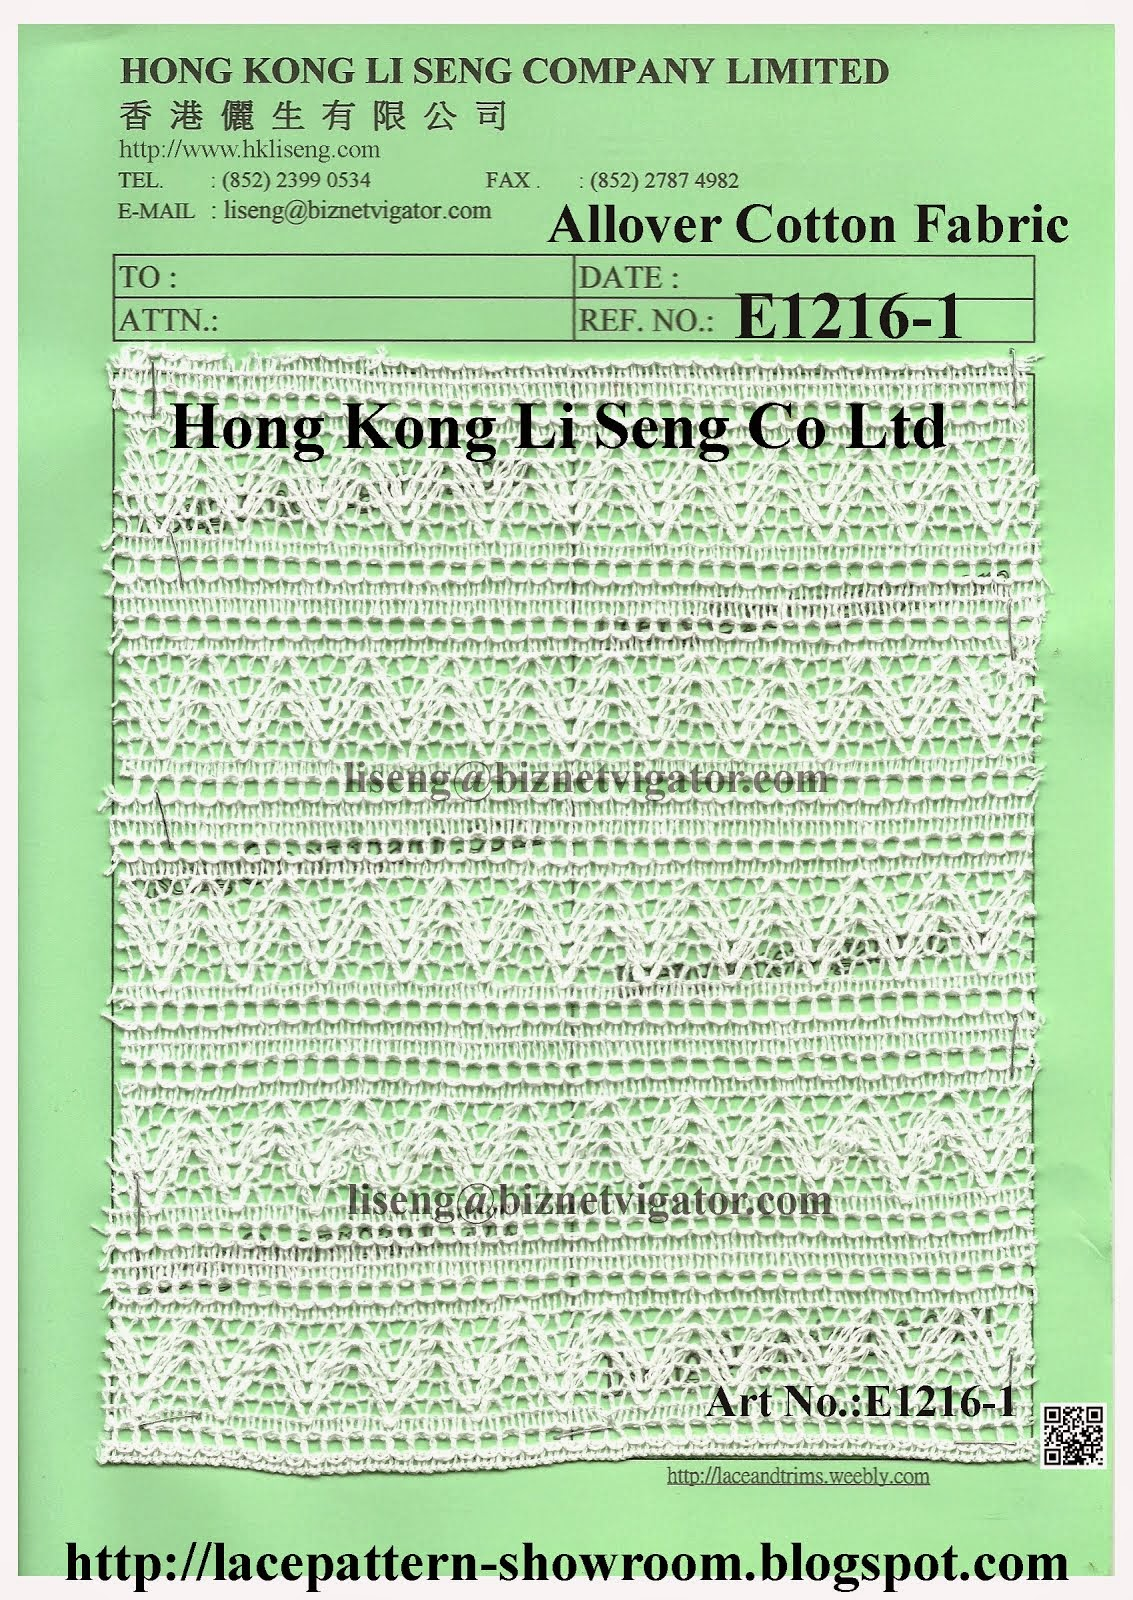 Allover Cotton Fabric Manufacturer Wholesale and Supplier - Hong Kong Li Seng Co Ltd